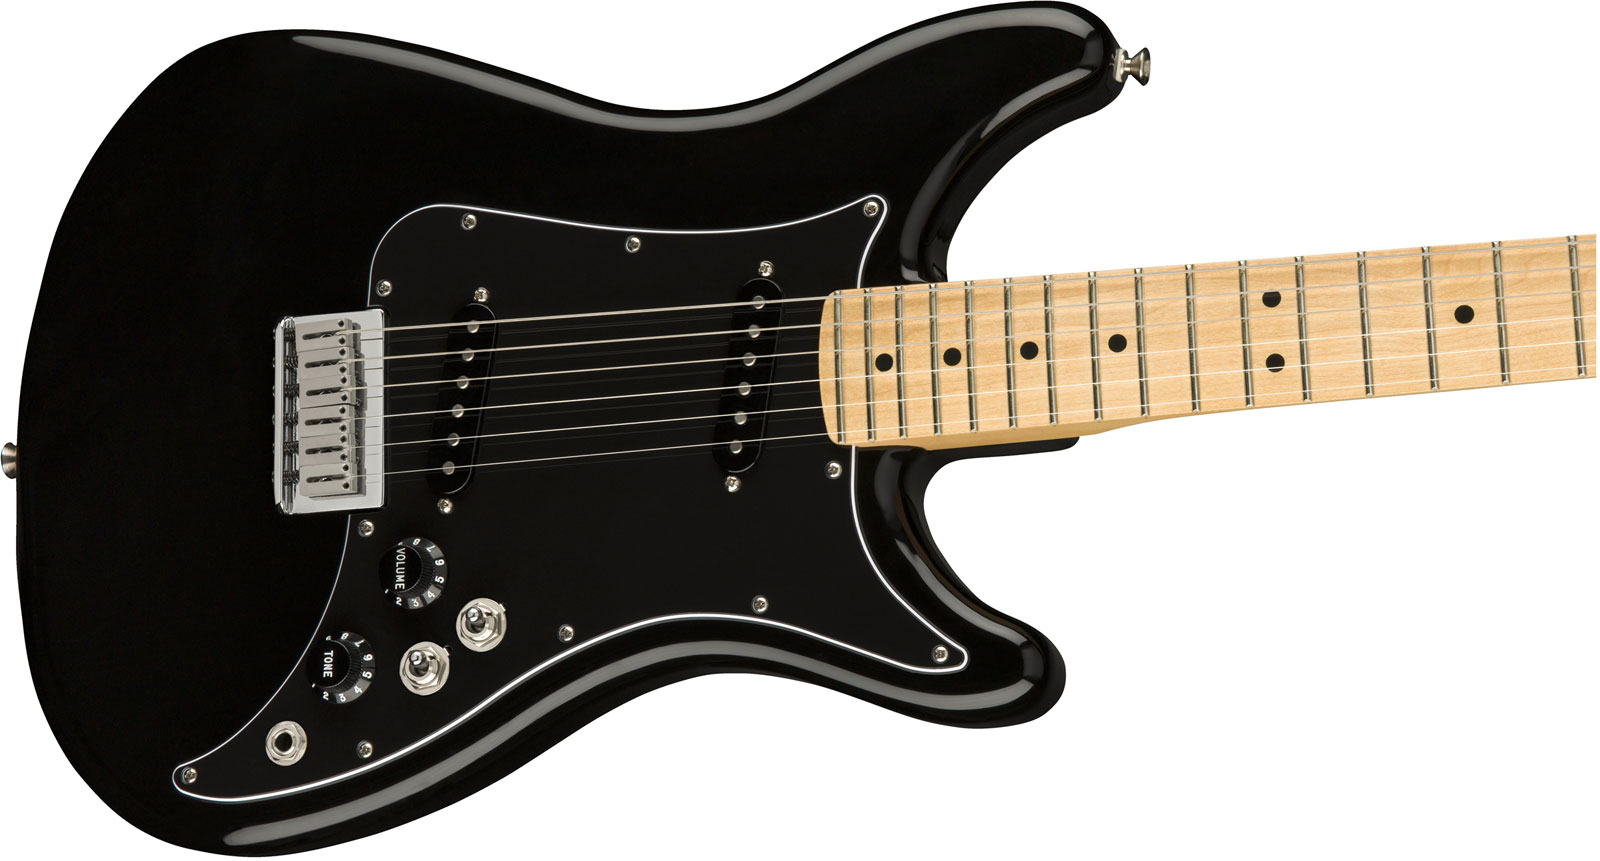 STRATOCASTER PLAYER LEAD II PF BLACK